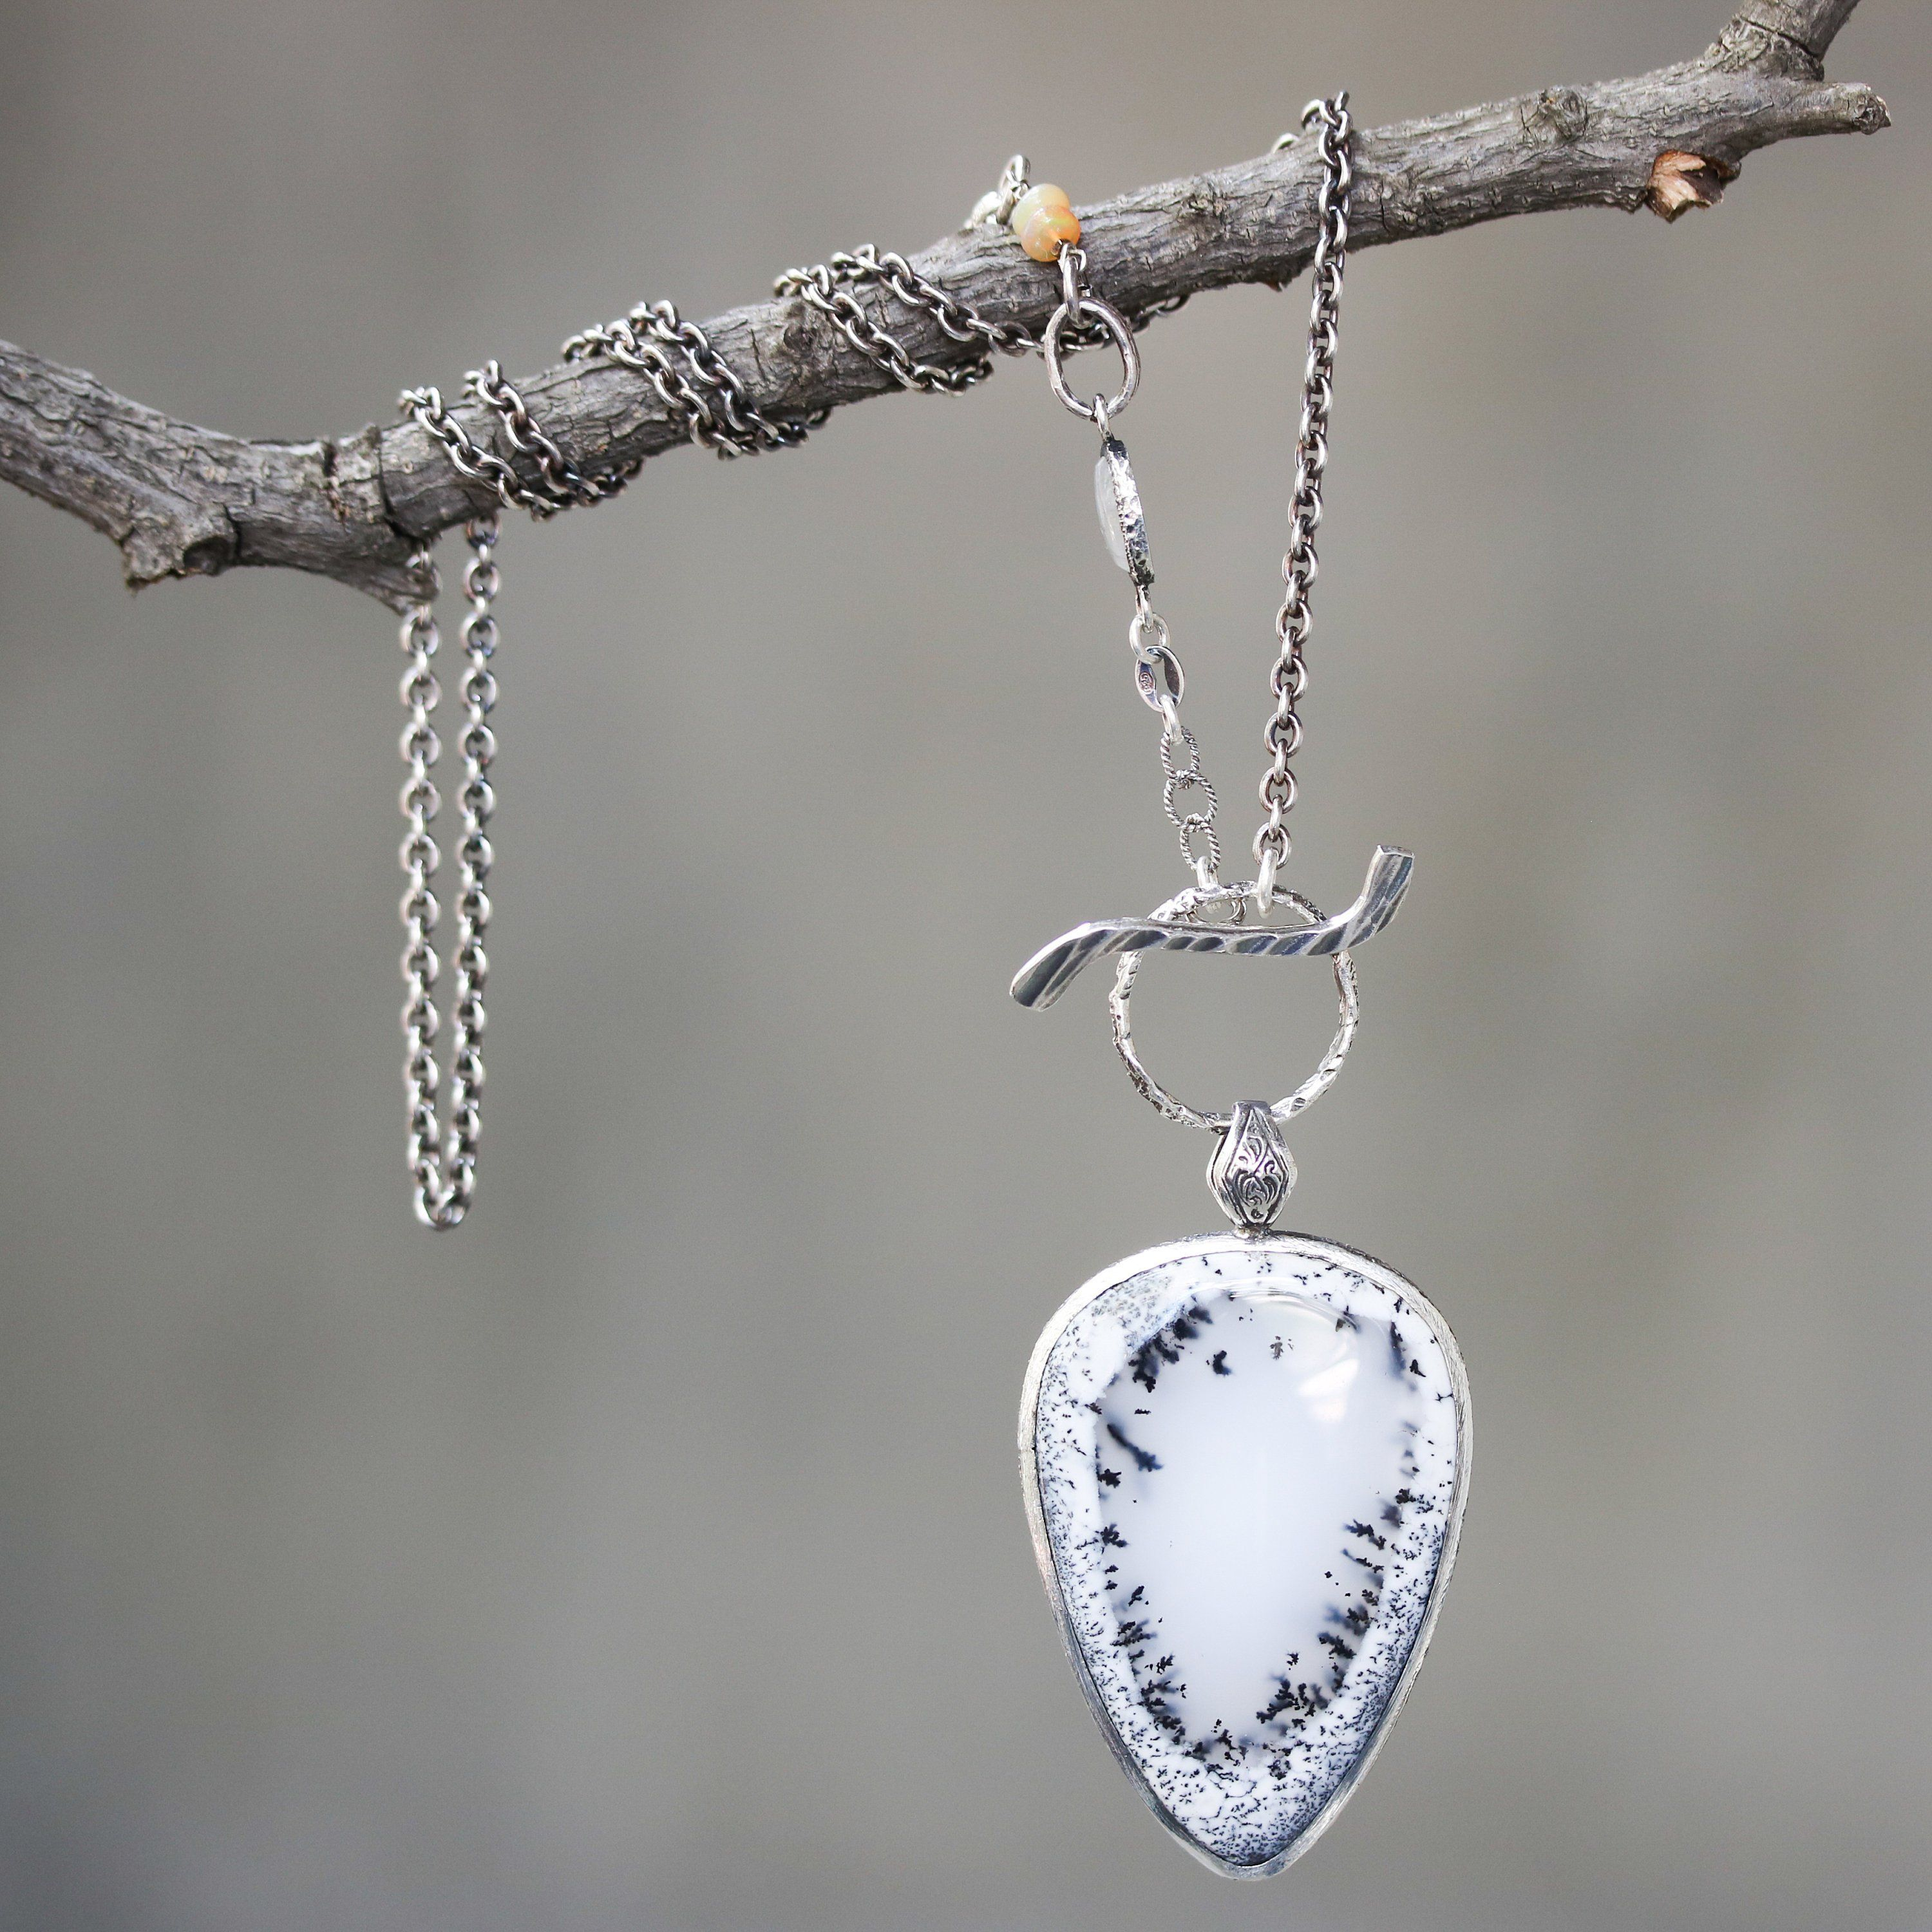 Teardrop moss agate pendant necklace in silver bezel setting with